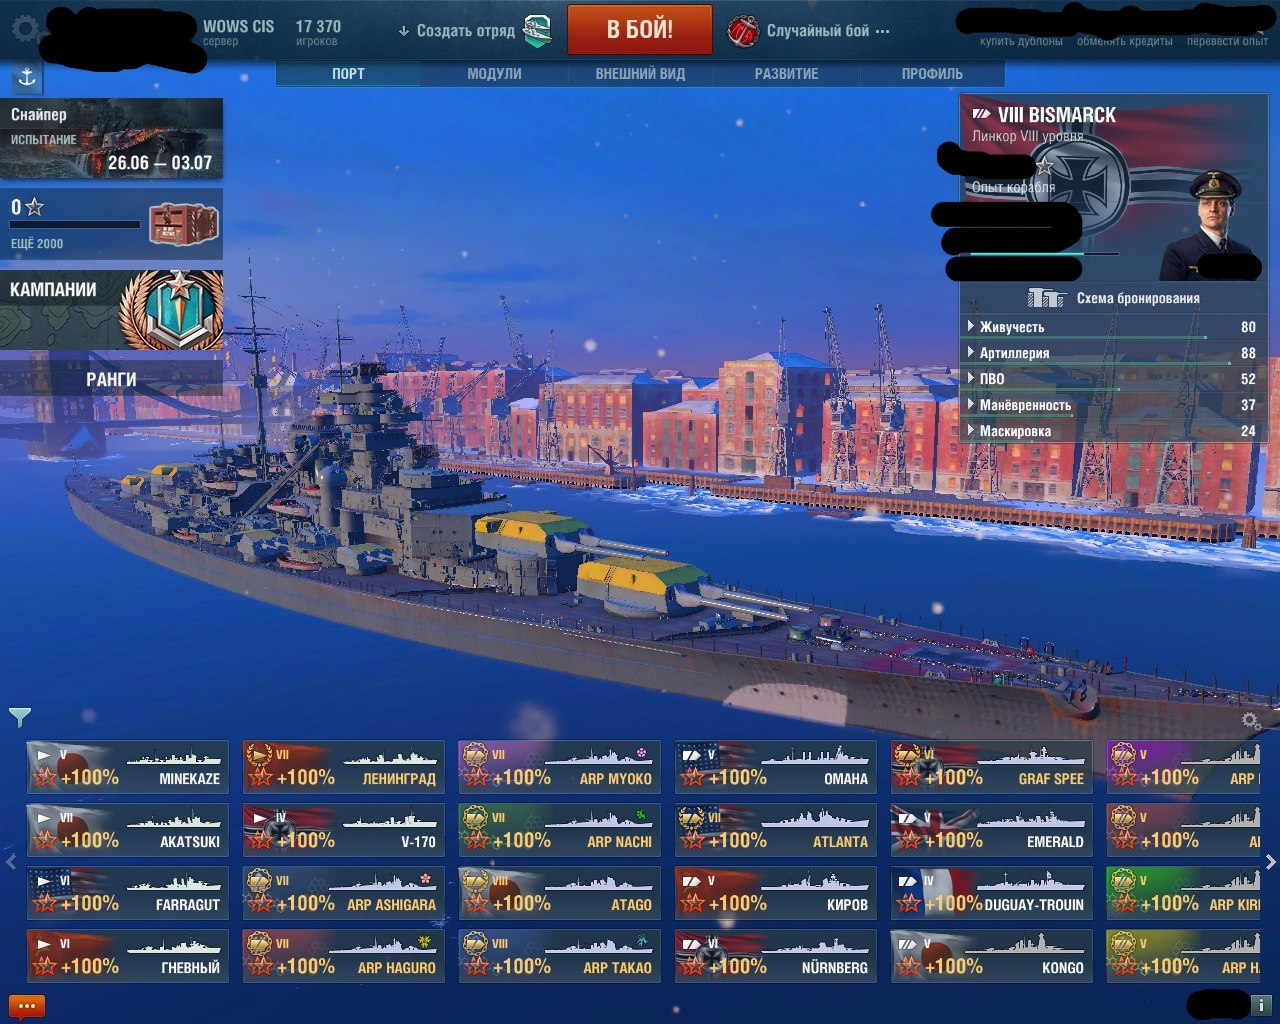 ������ ��� �������� �� ���� ������ World of Tanks and World of Warships ����: 4000